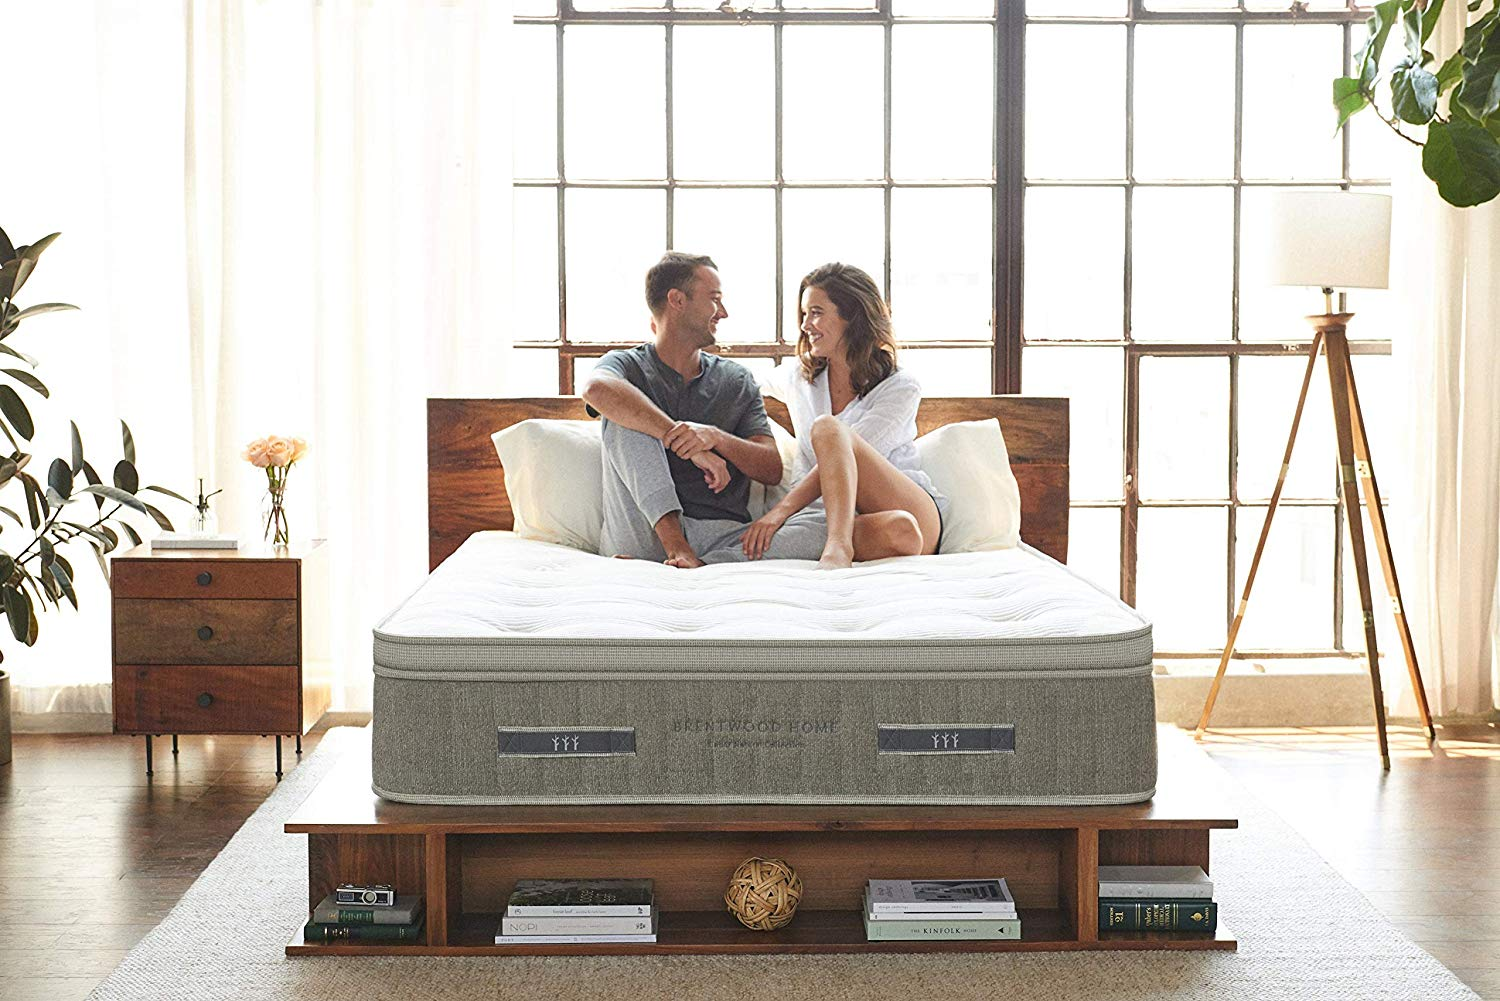 Brentwood Home Luxury Mattress review by www.snoremagazine.com